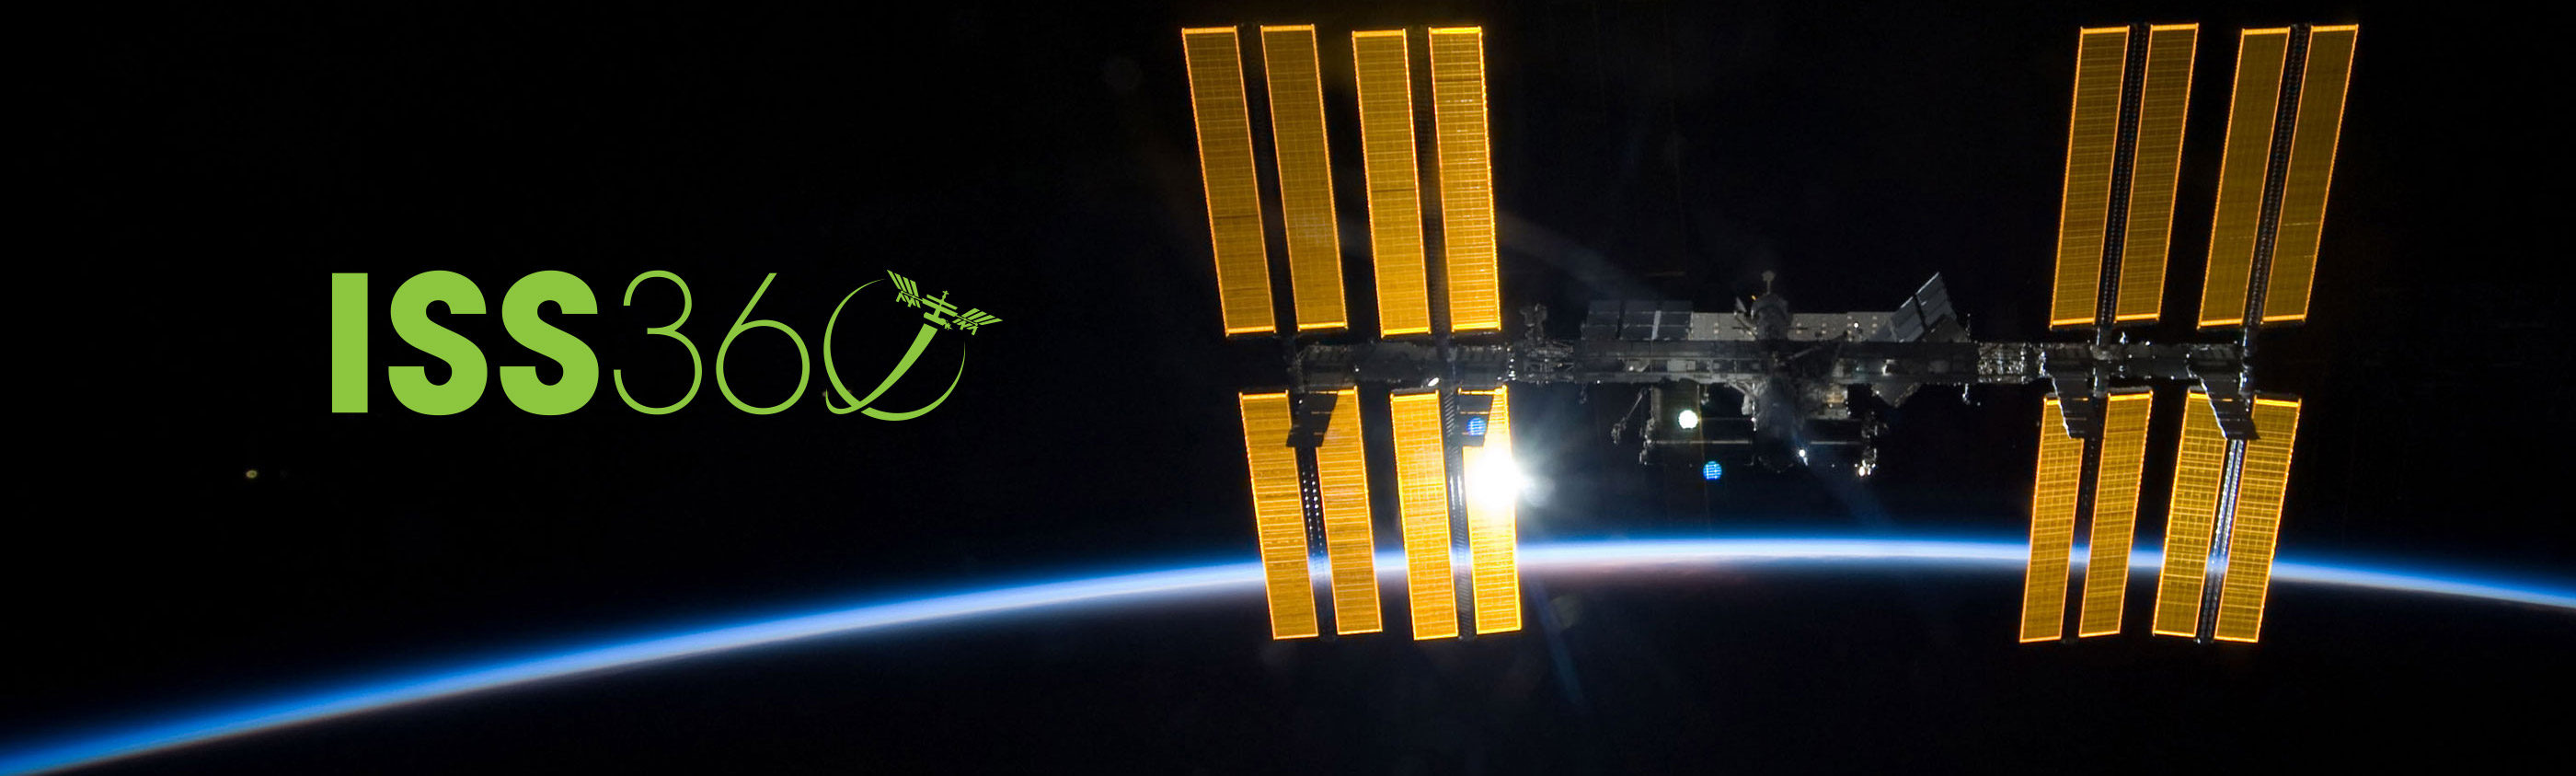 iss illumnated by sun over earth horizon iss360 banner green